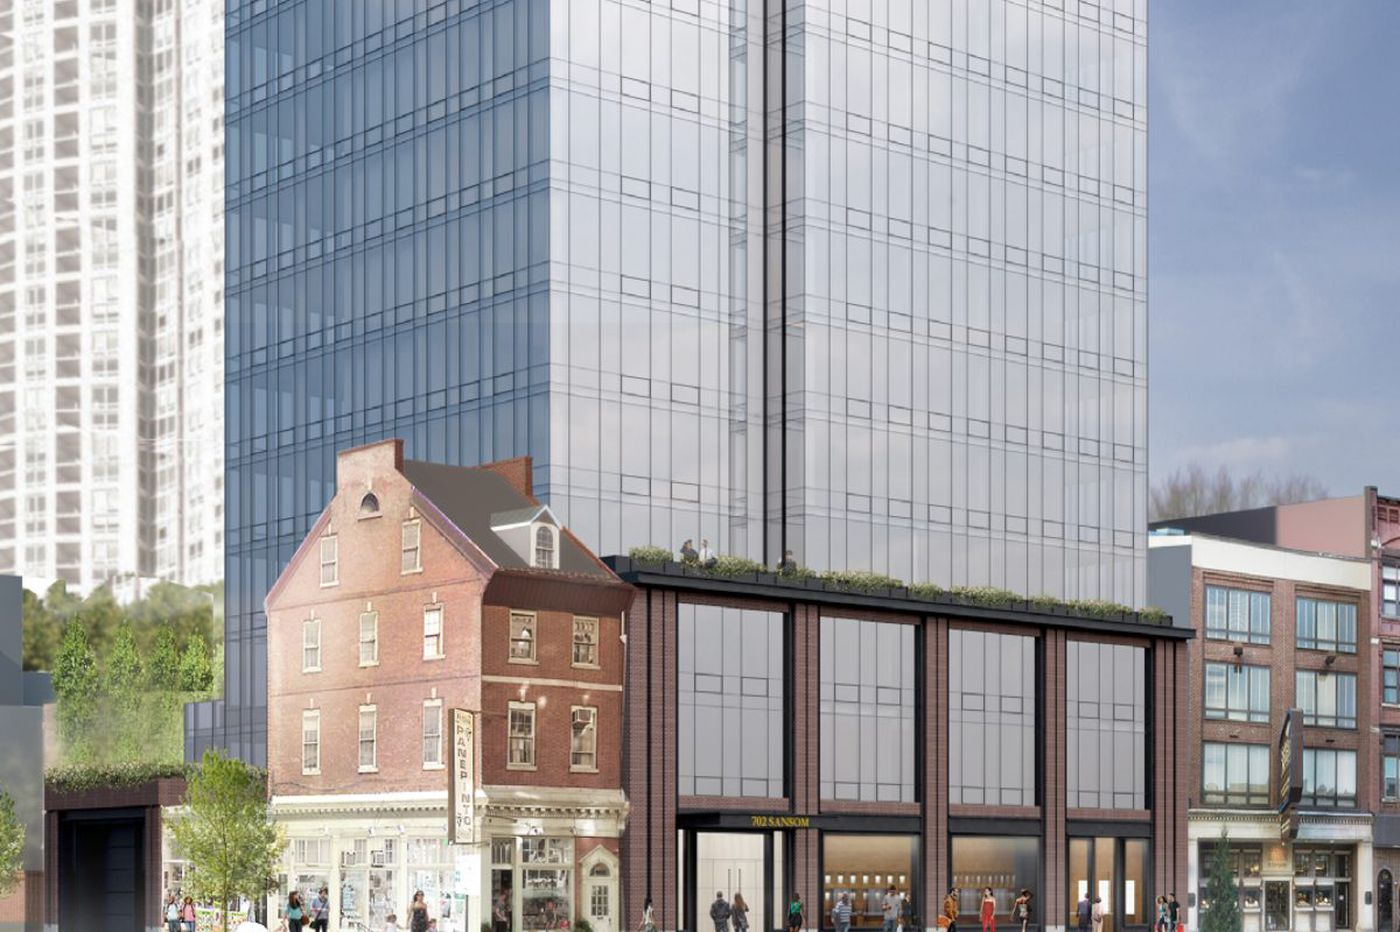 Tolls New Tower Design For Jewelers Row Is An Architectural Zombie